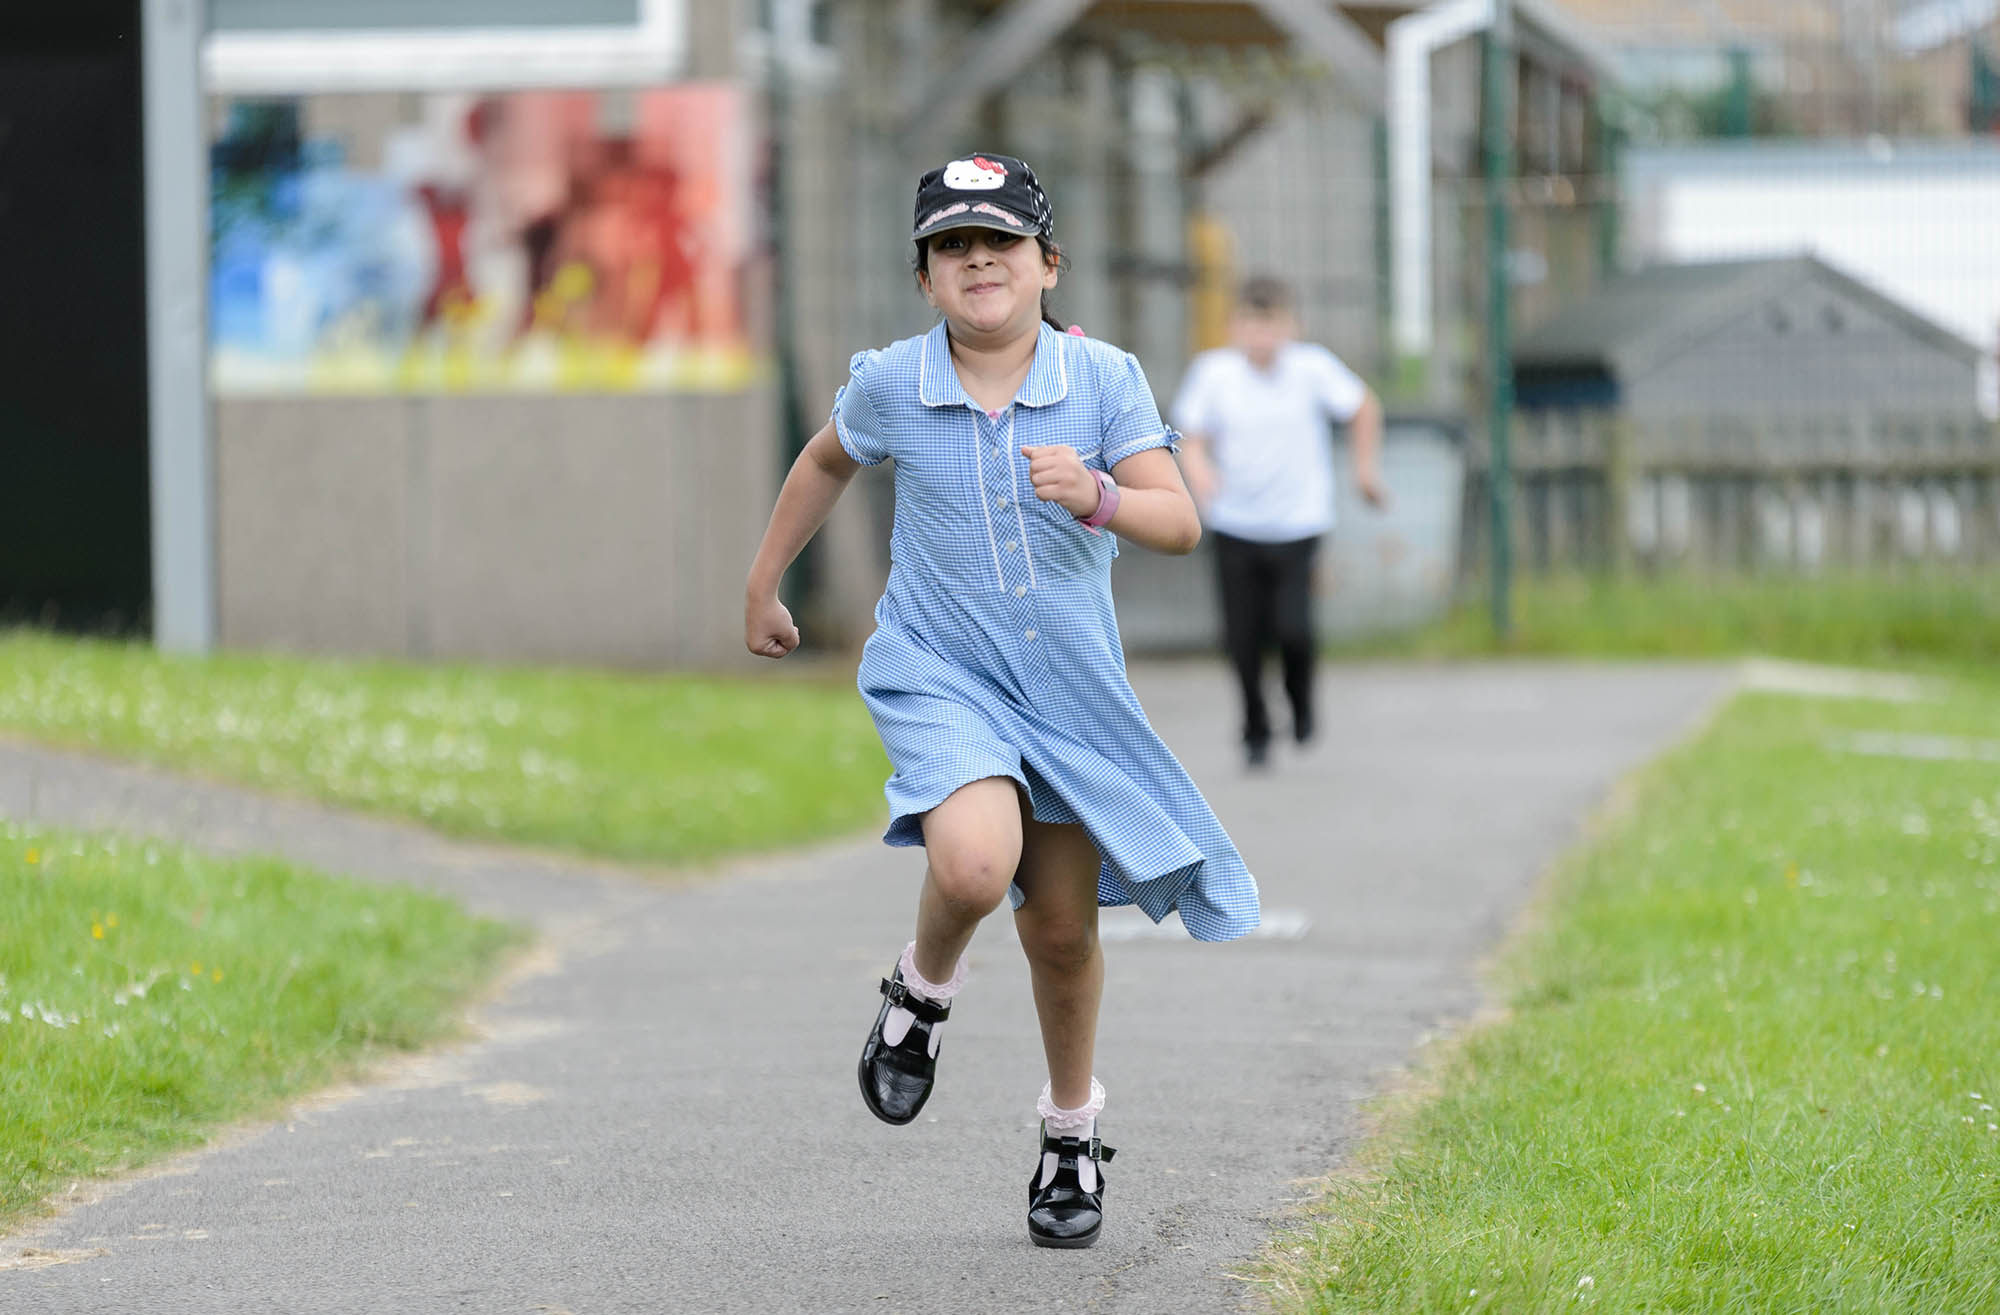 girl running down a path in cap and school uniform